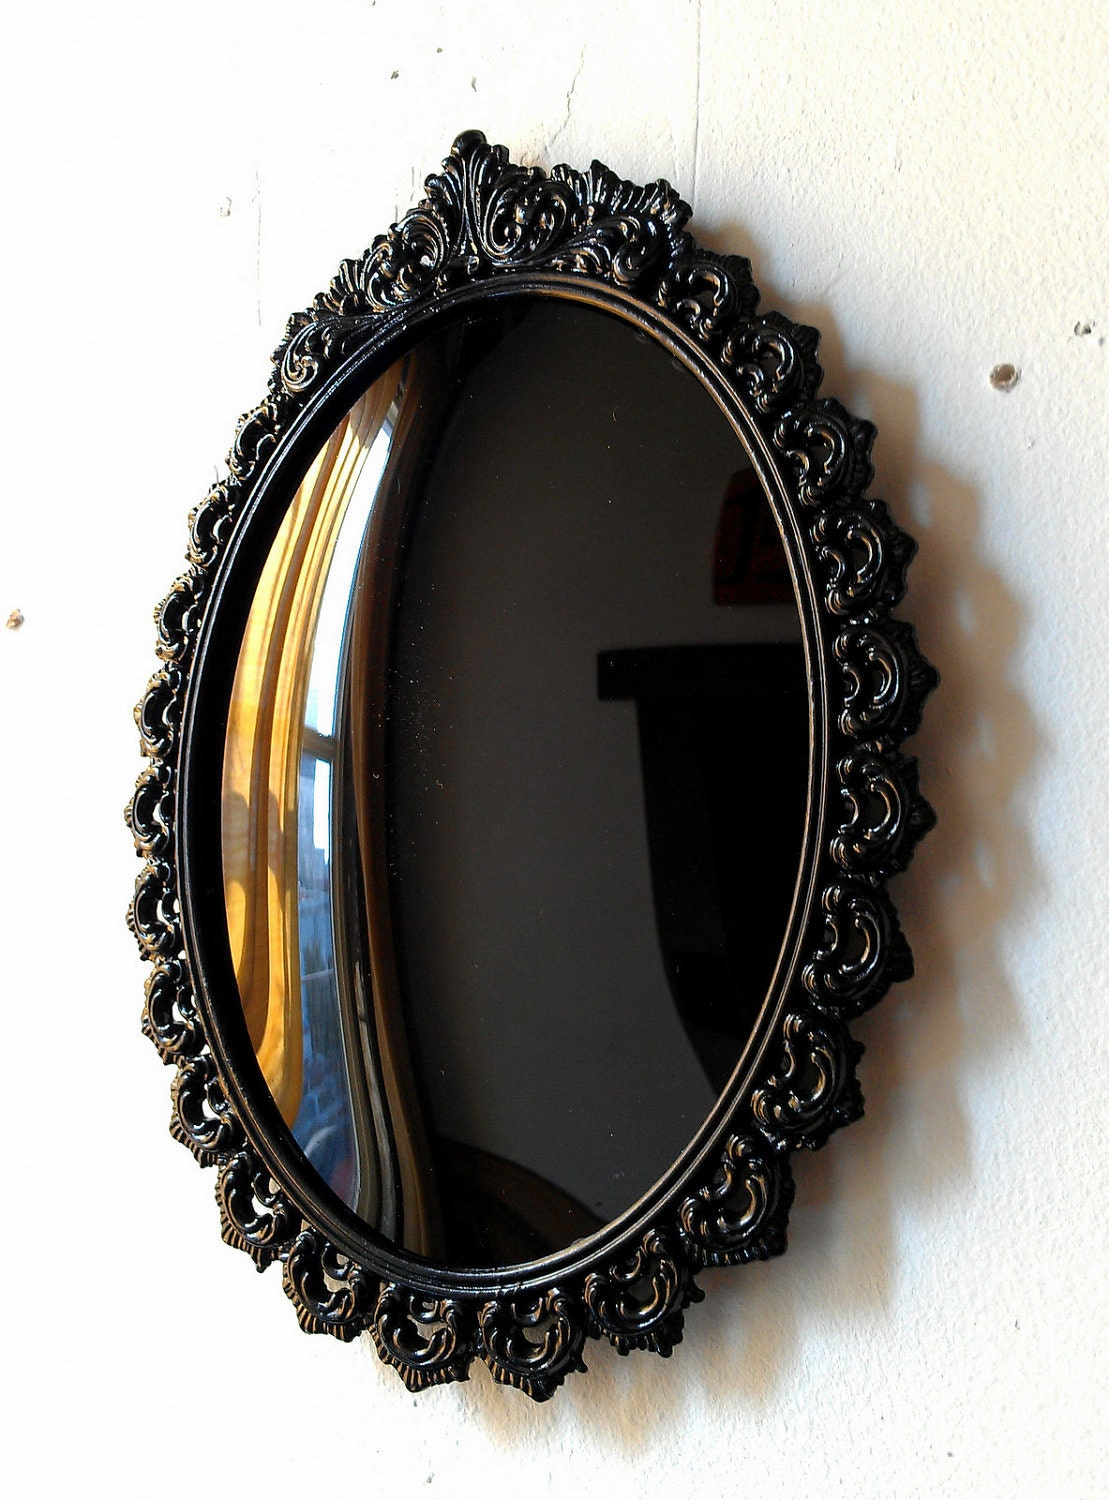 black convex scrying mirror in vintage oval frame 9 by 6. Black Bedroom Furniture Sets. Home Design Ideas